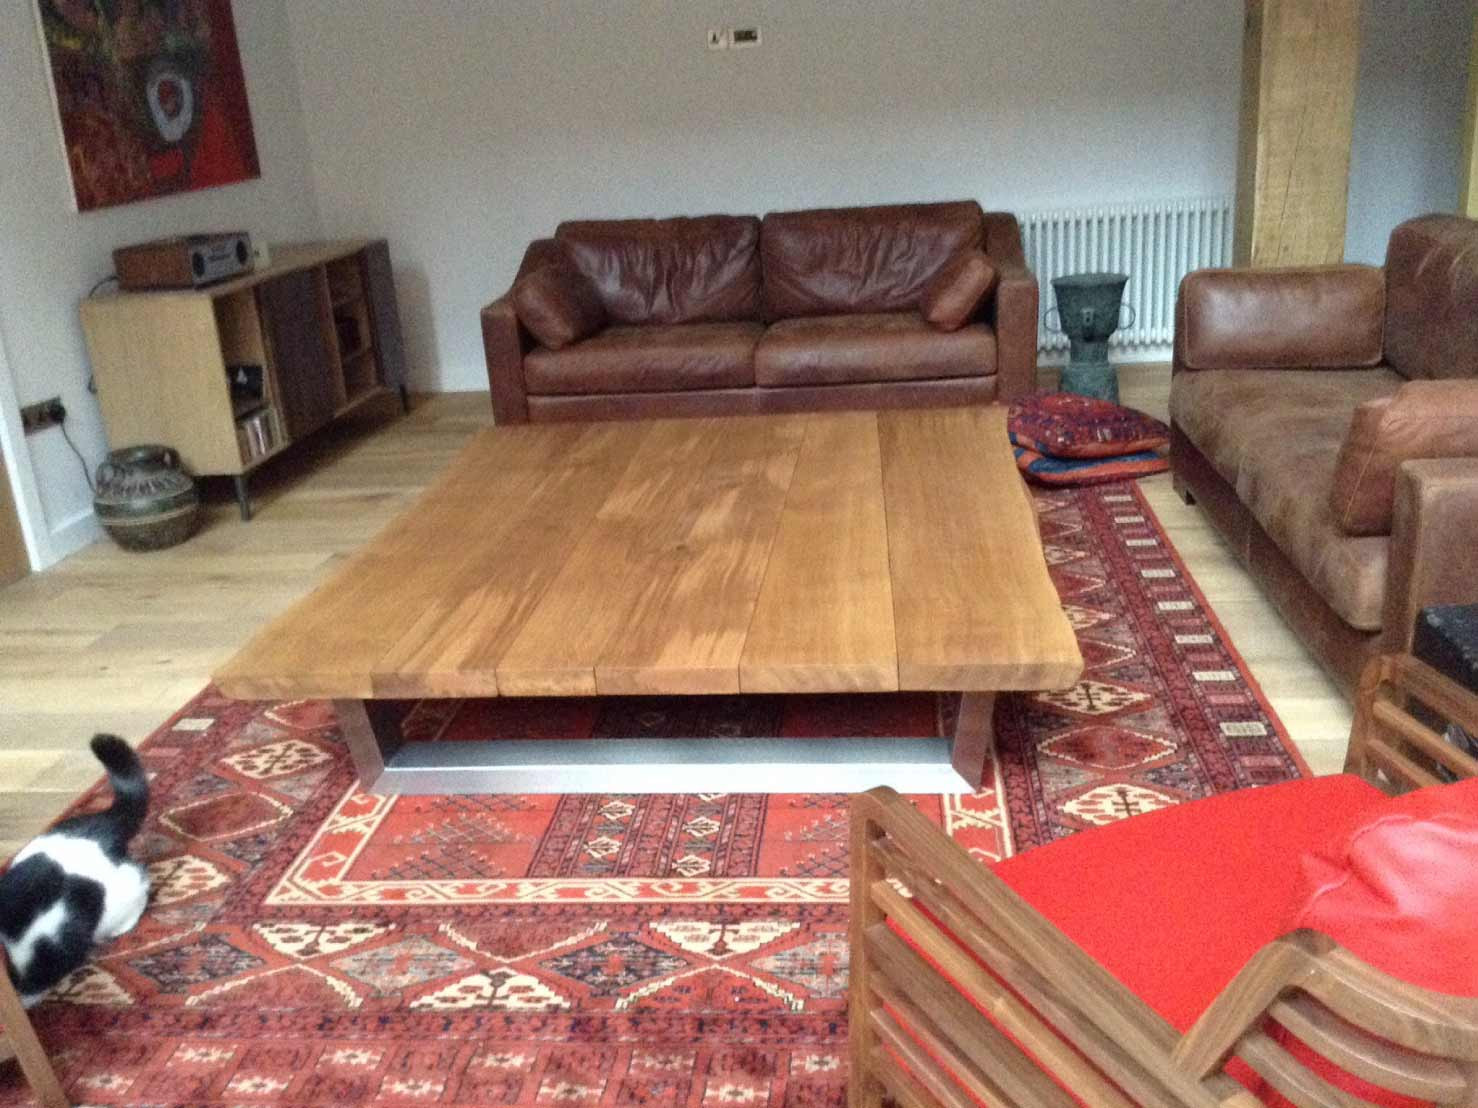 extra-large-coffee-table-from-abacus-tables-komodo-1.8m-live-edge-oak-top-project-199